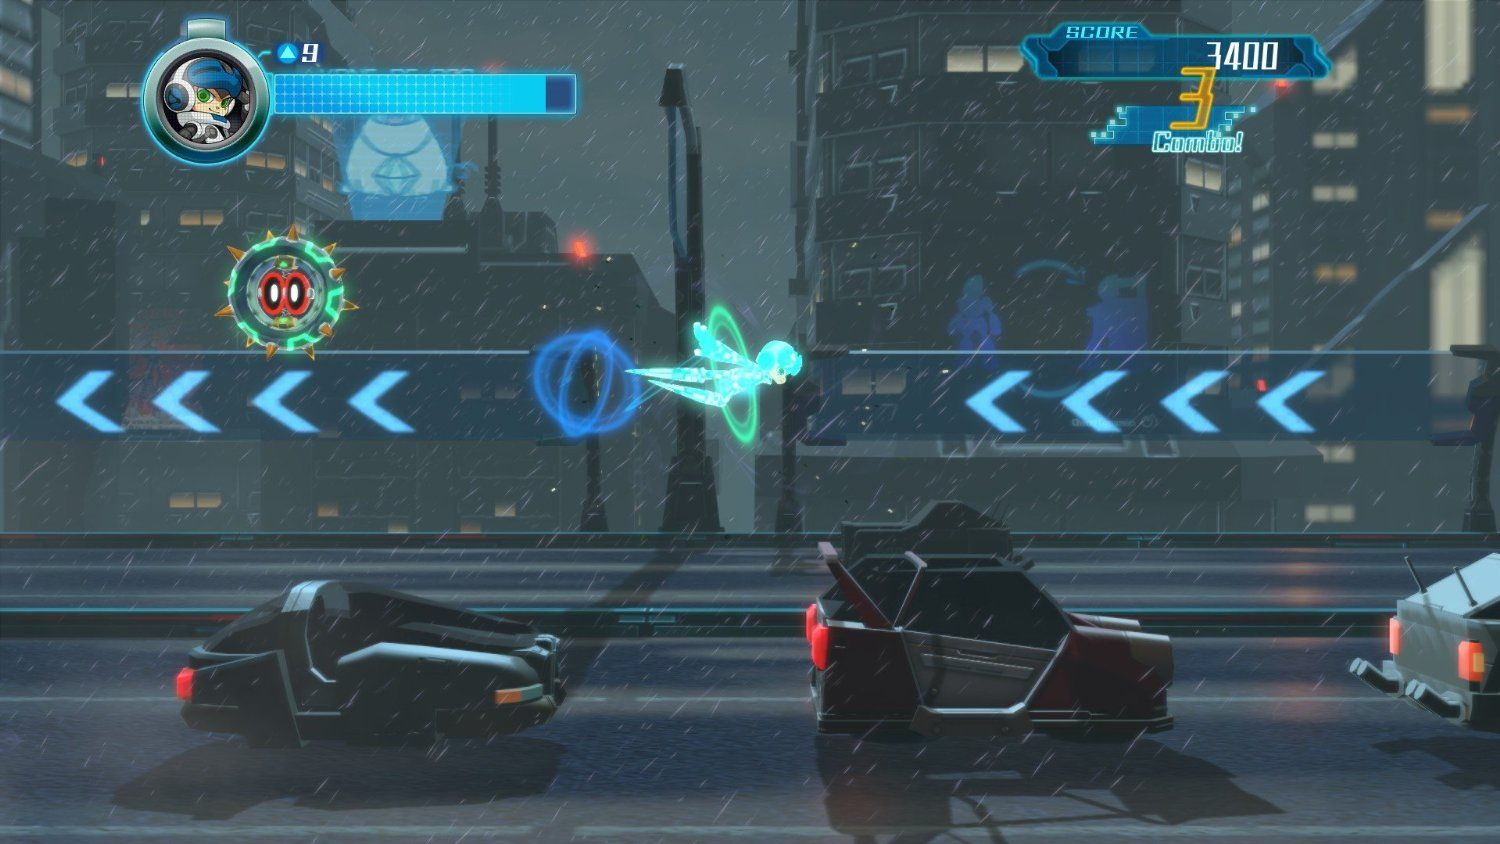 Mighty No 9 (PS4) - 7